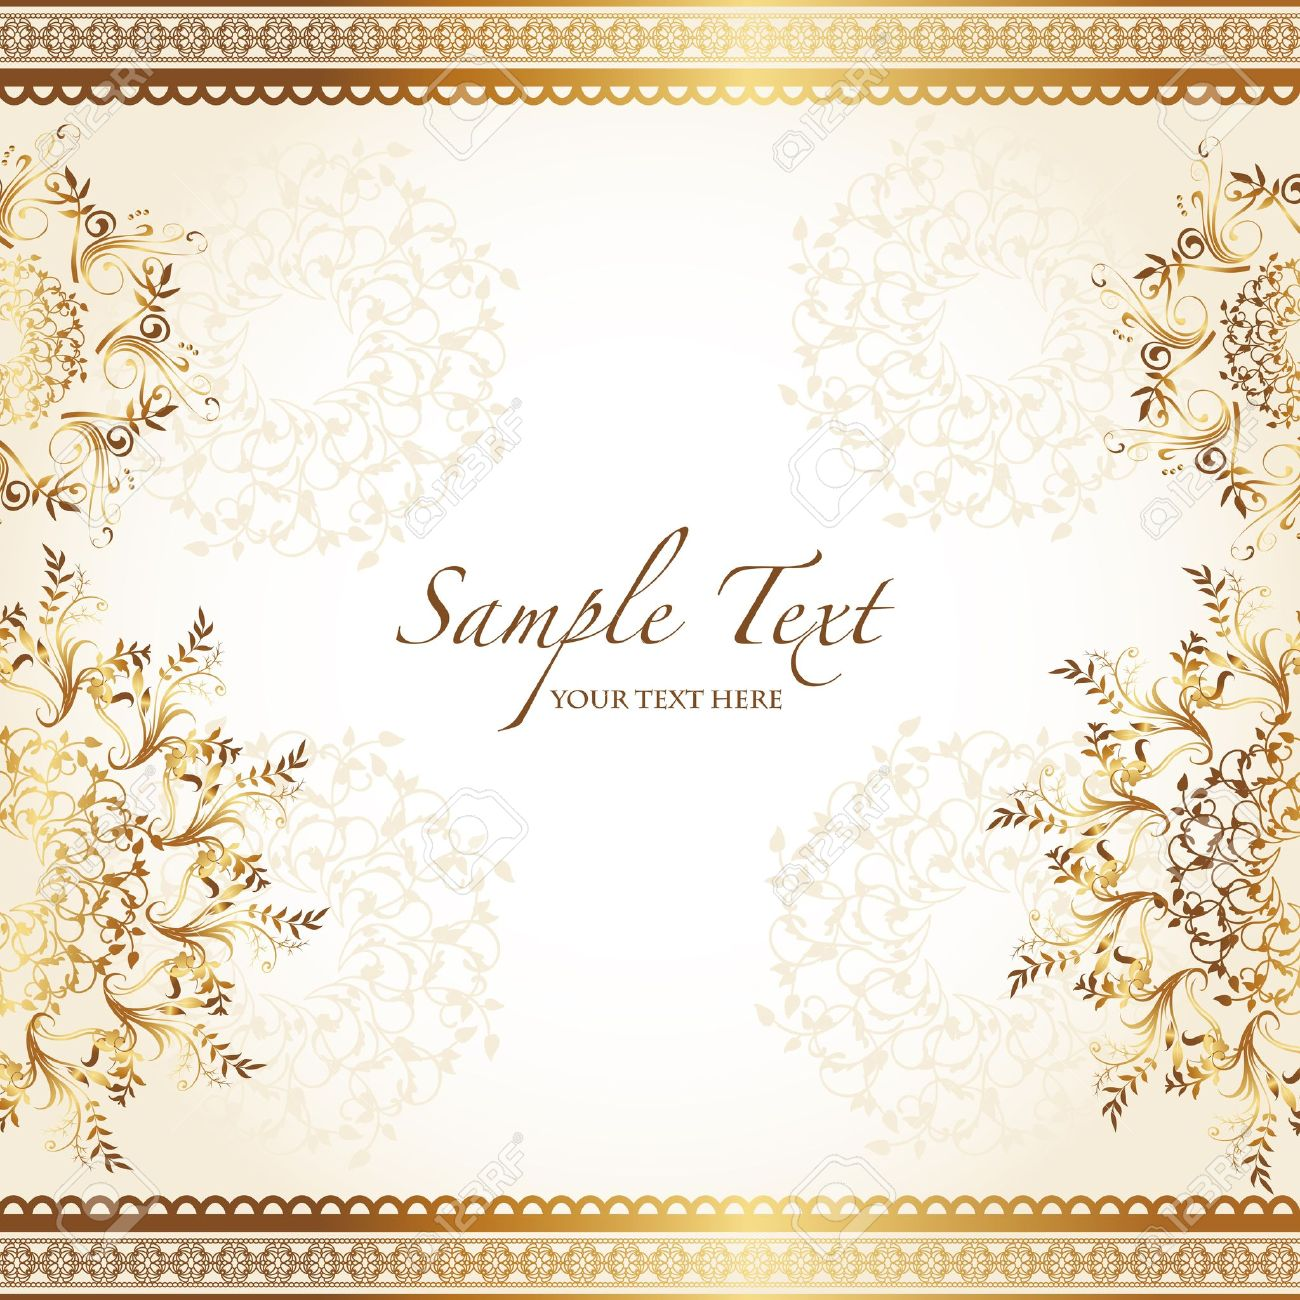 Download Wedding Card Background Wallpaper Gallery